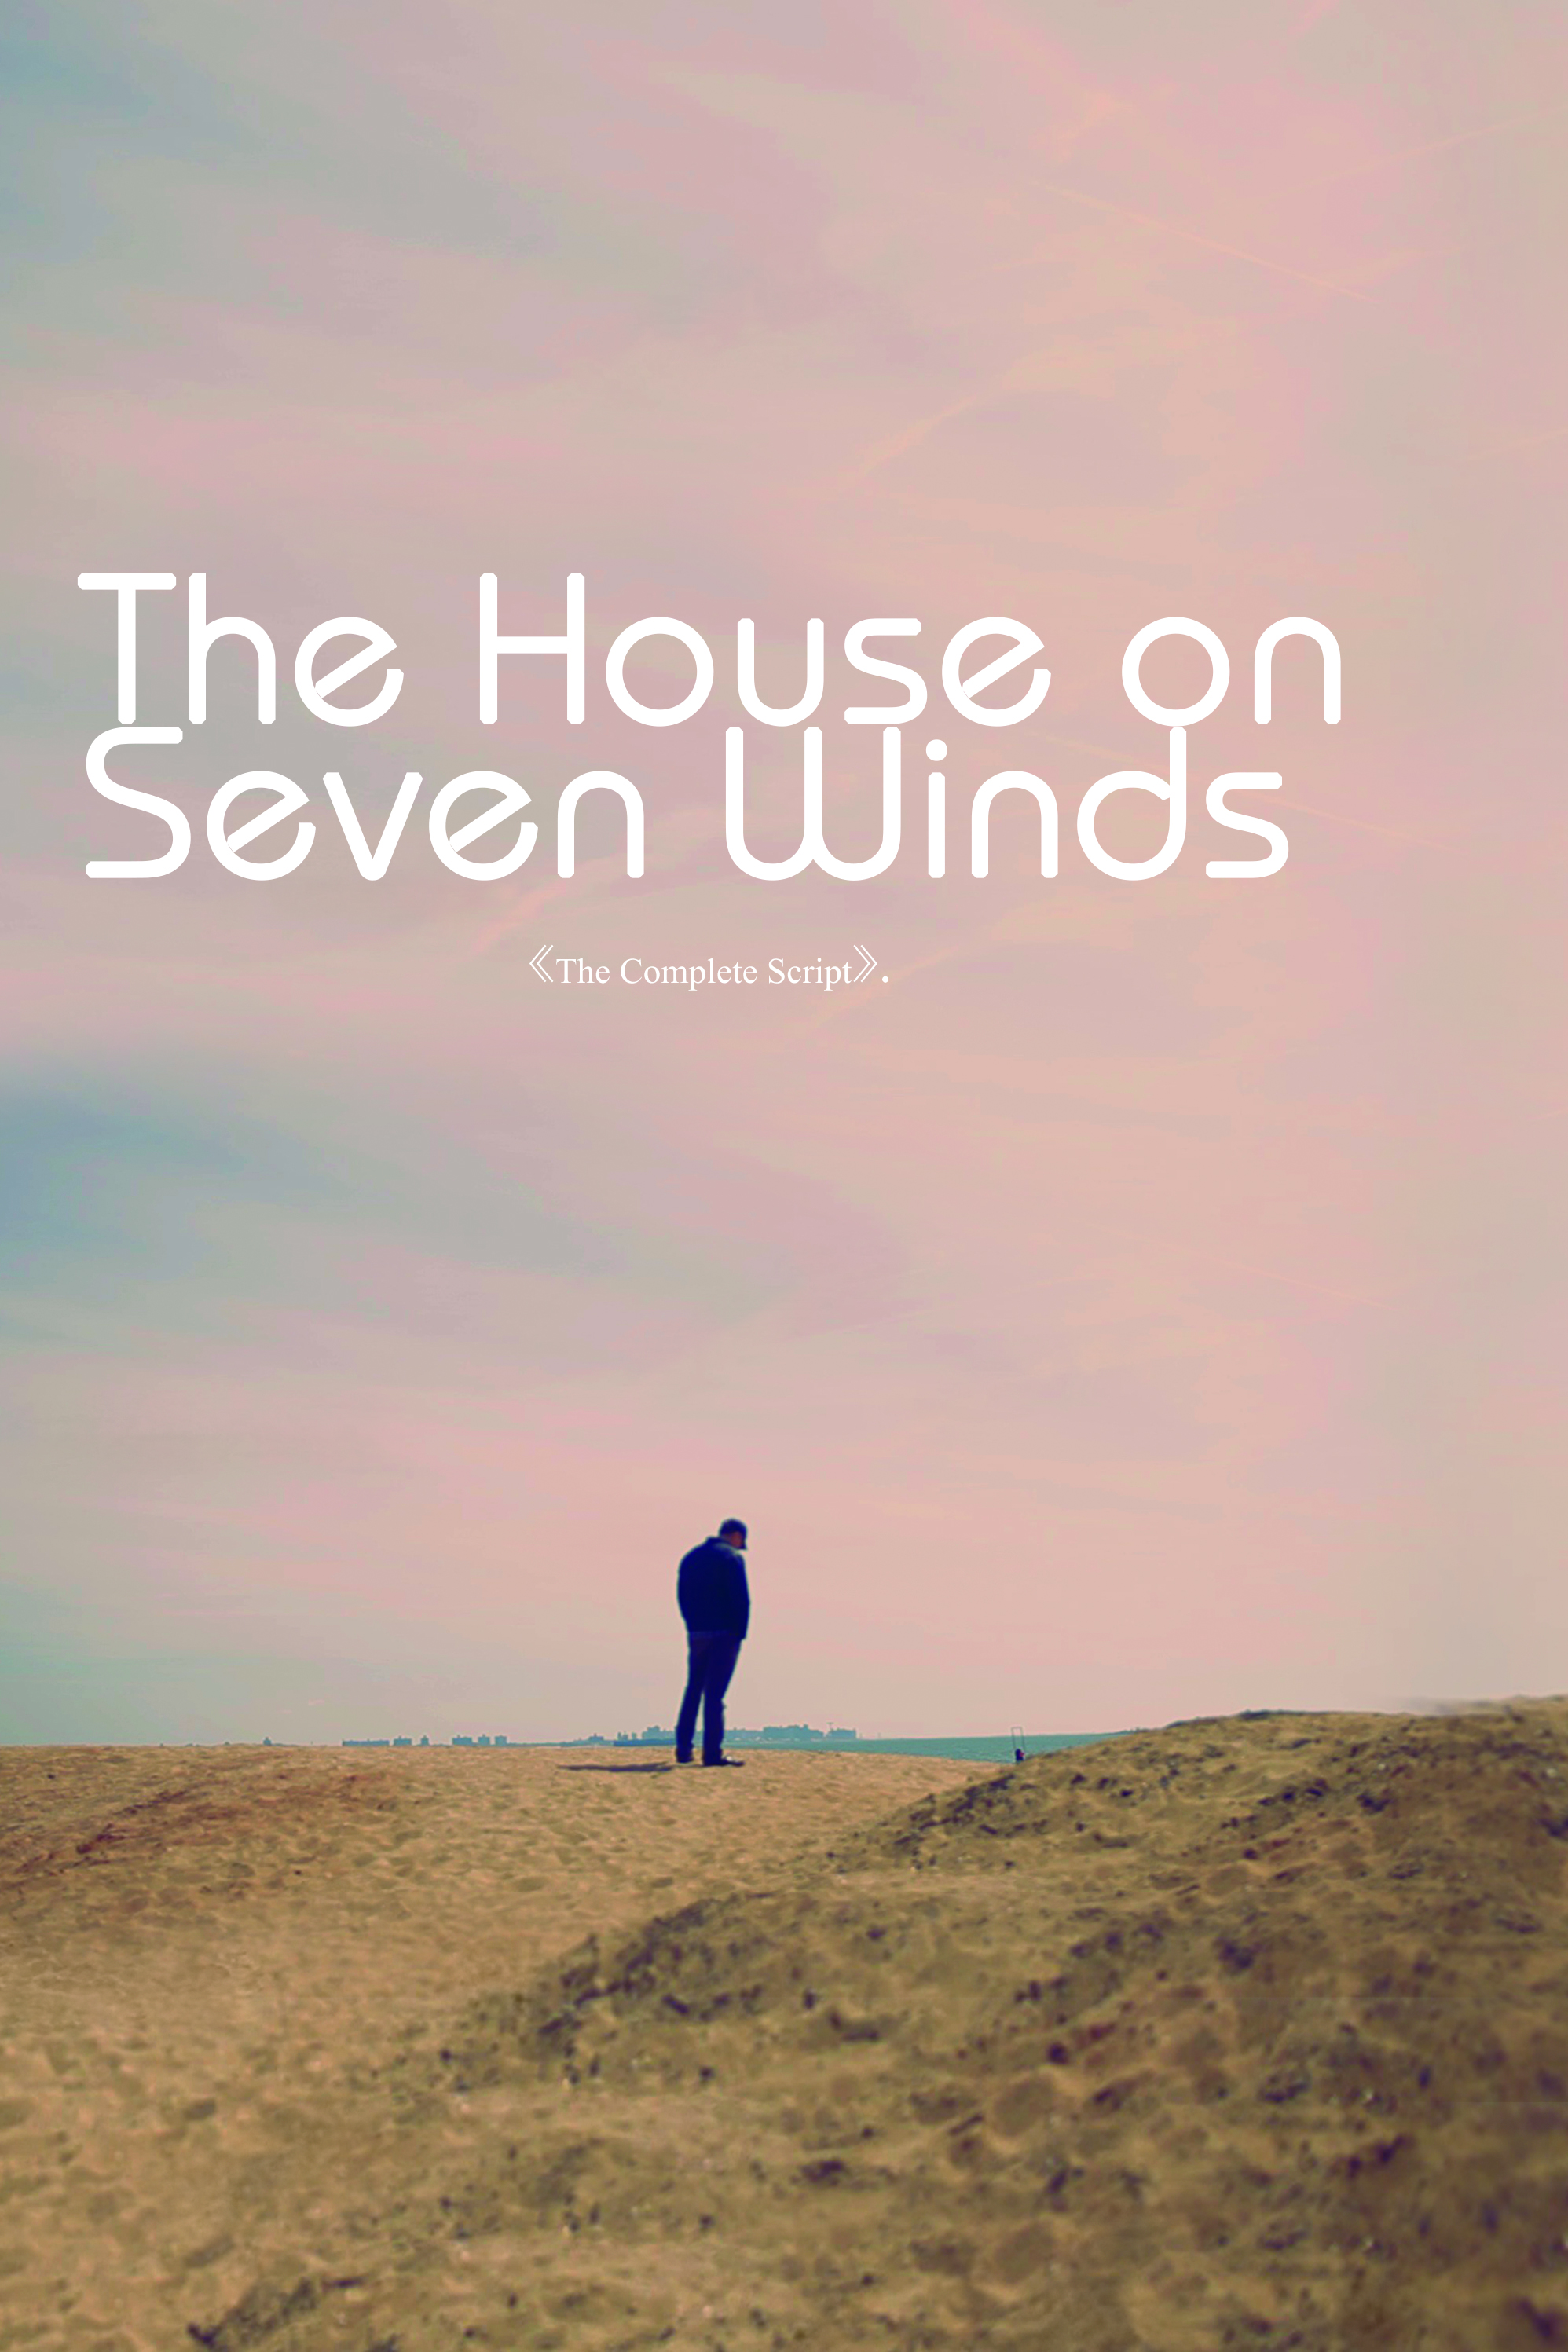 The House on Seven Winds: The Complete Script